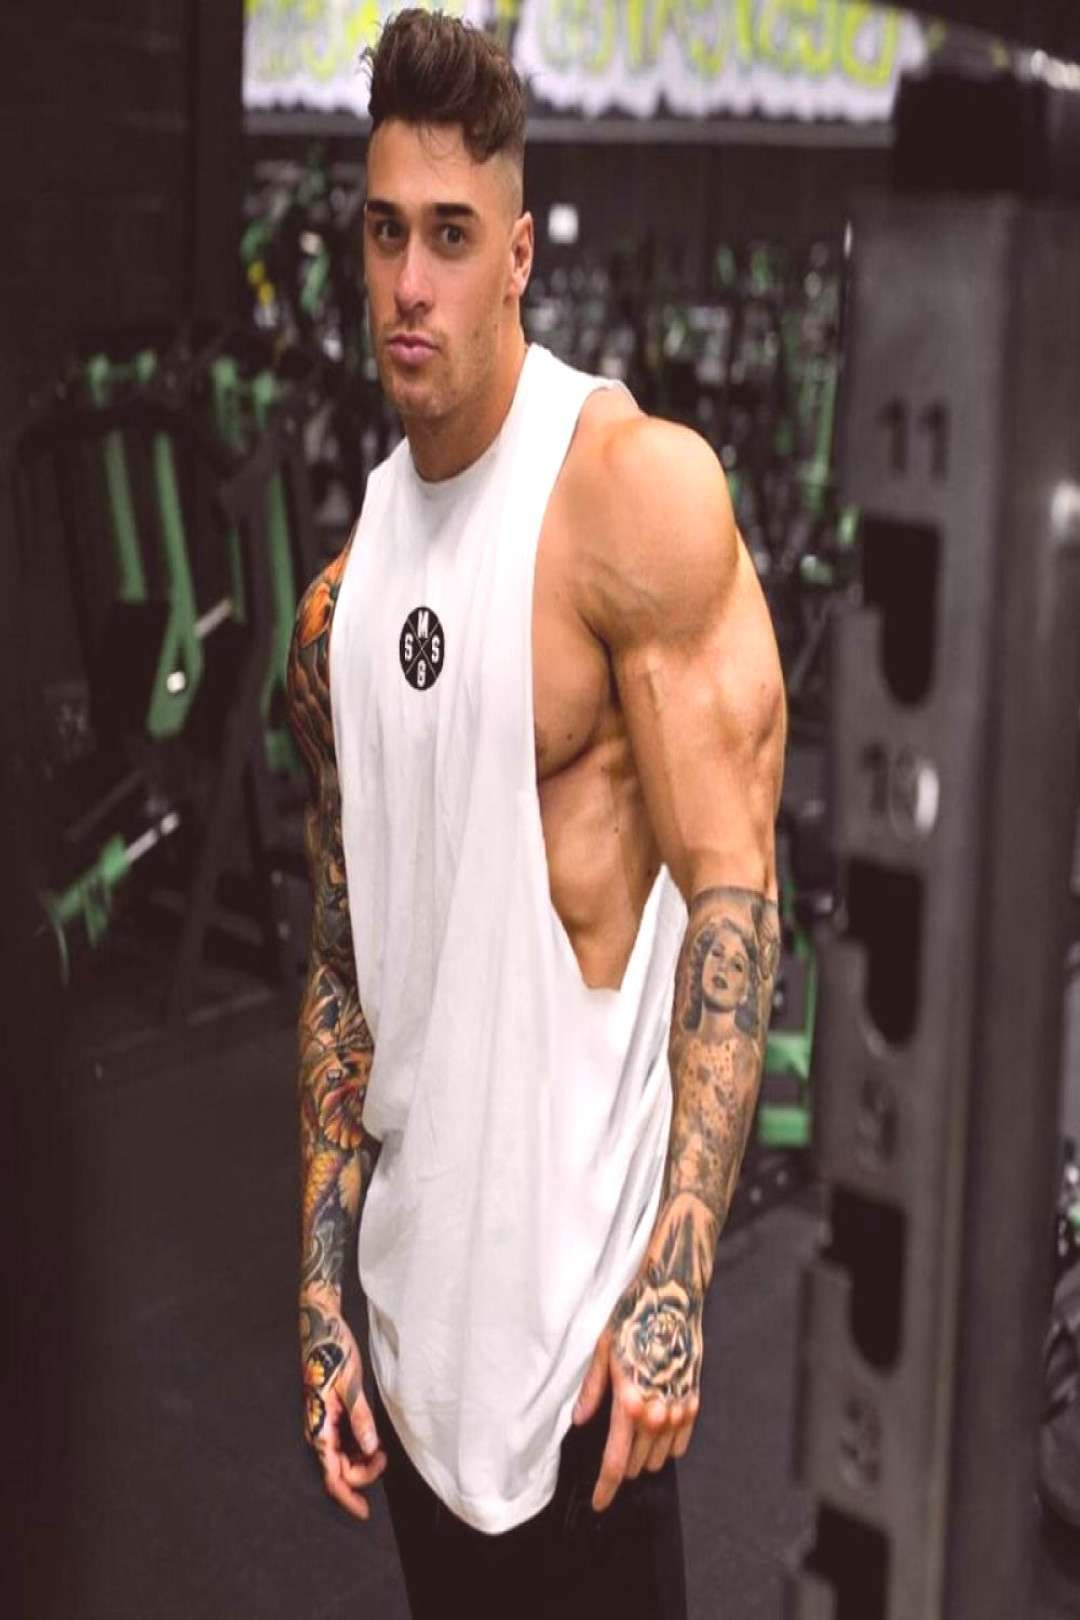 Sleeveless Shipping Hashtag2 Fitness Muscle Casual Shirt